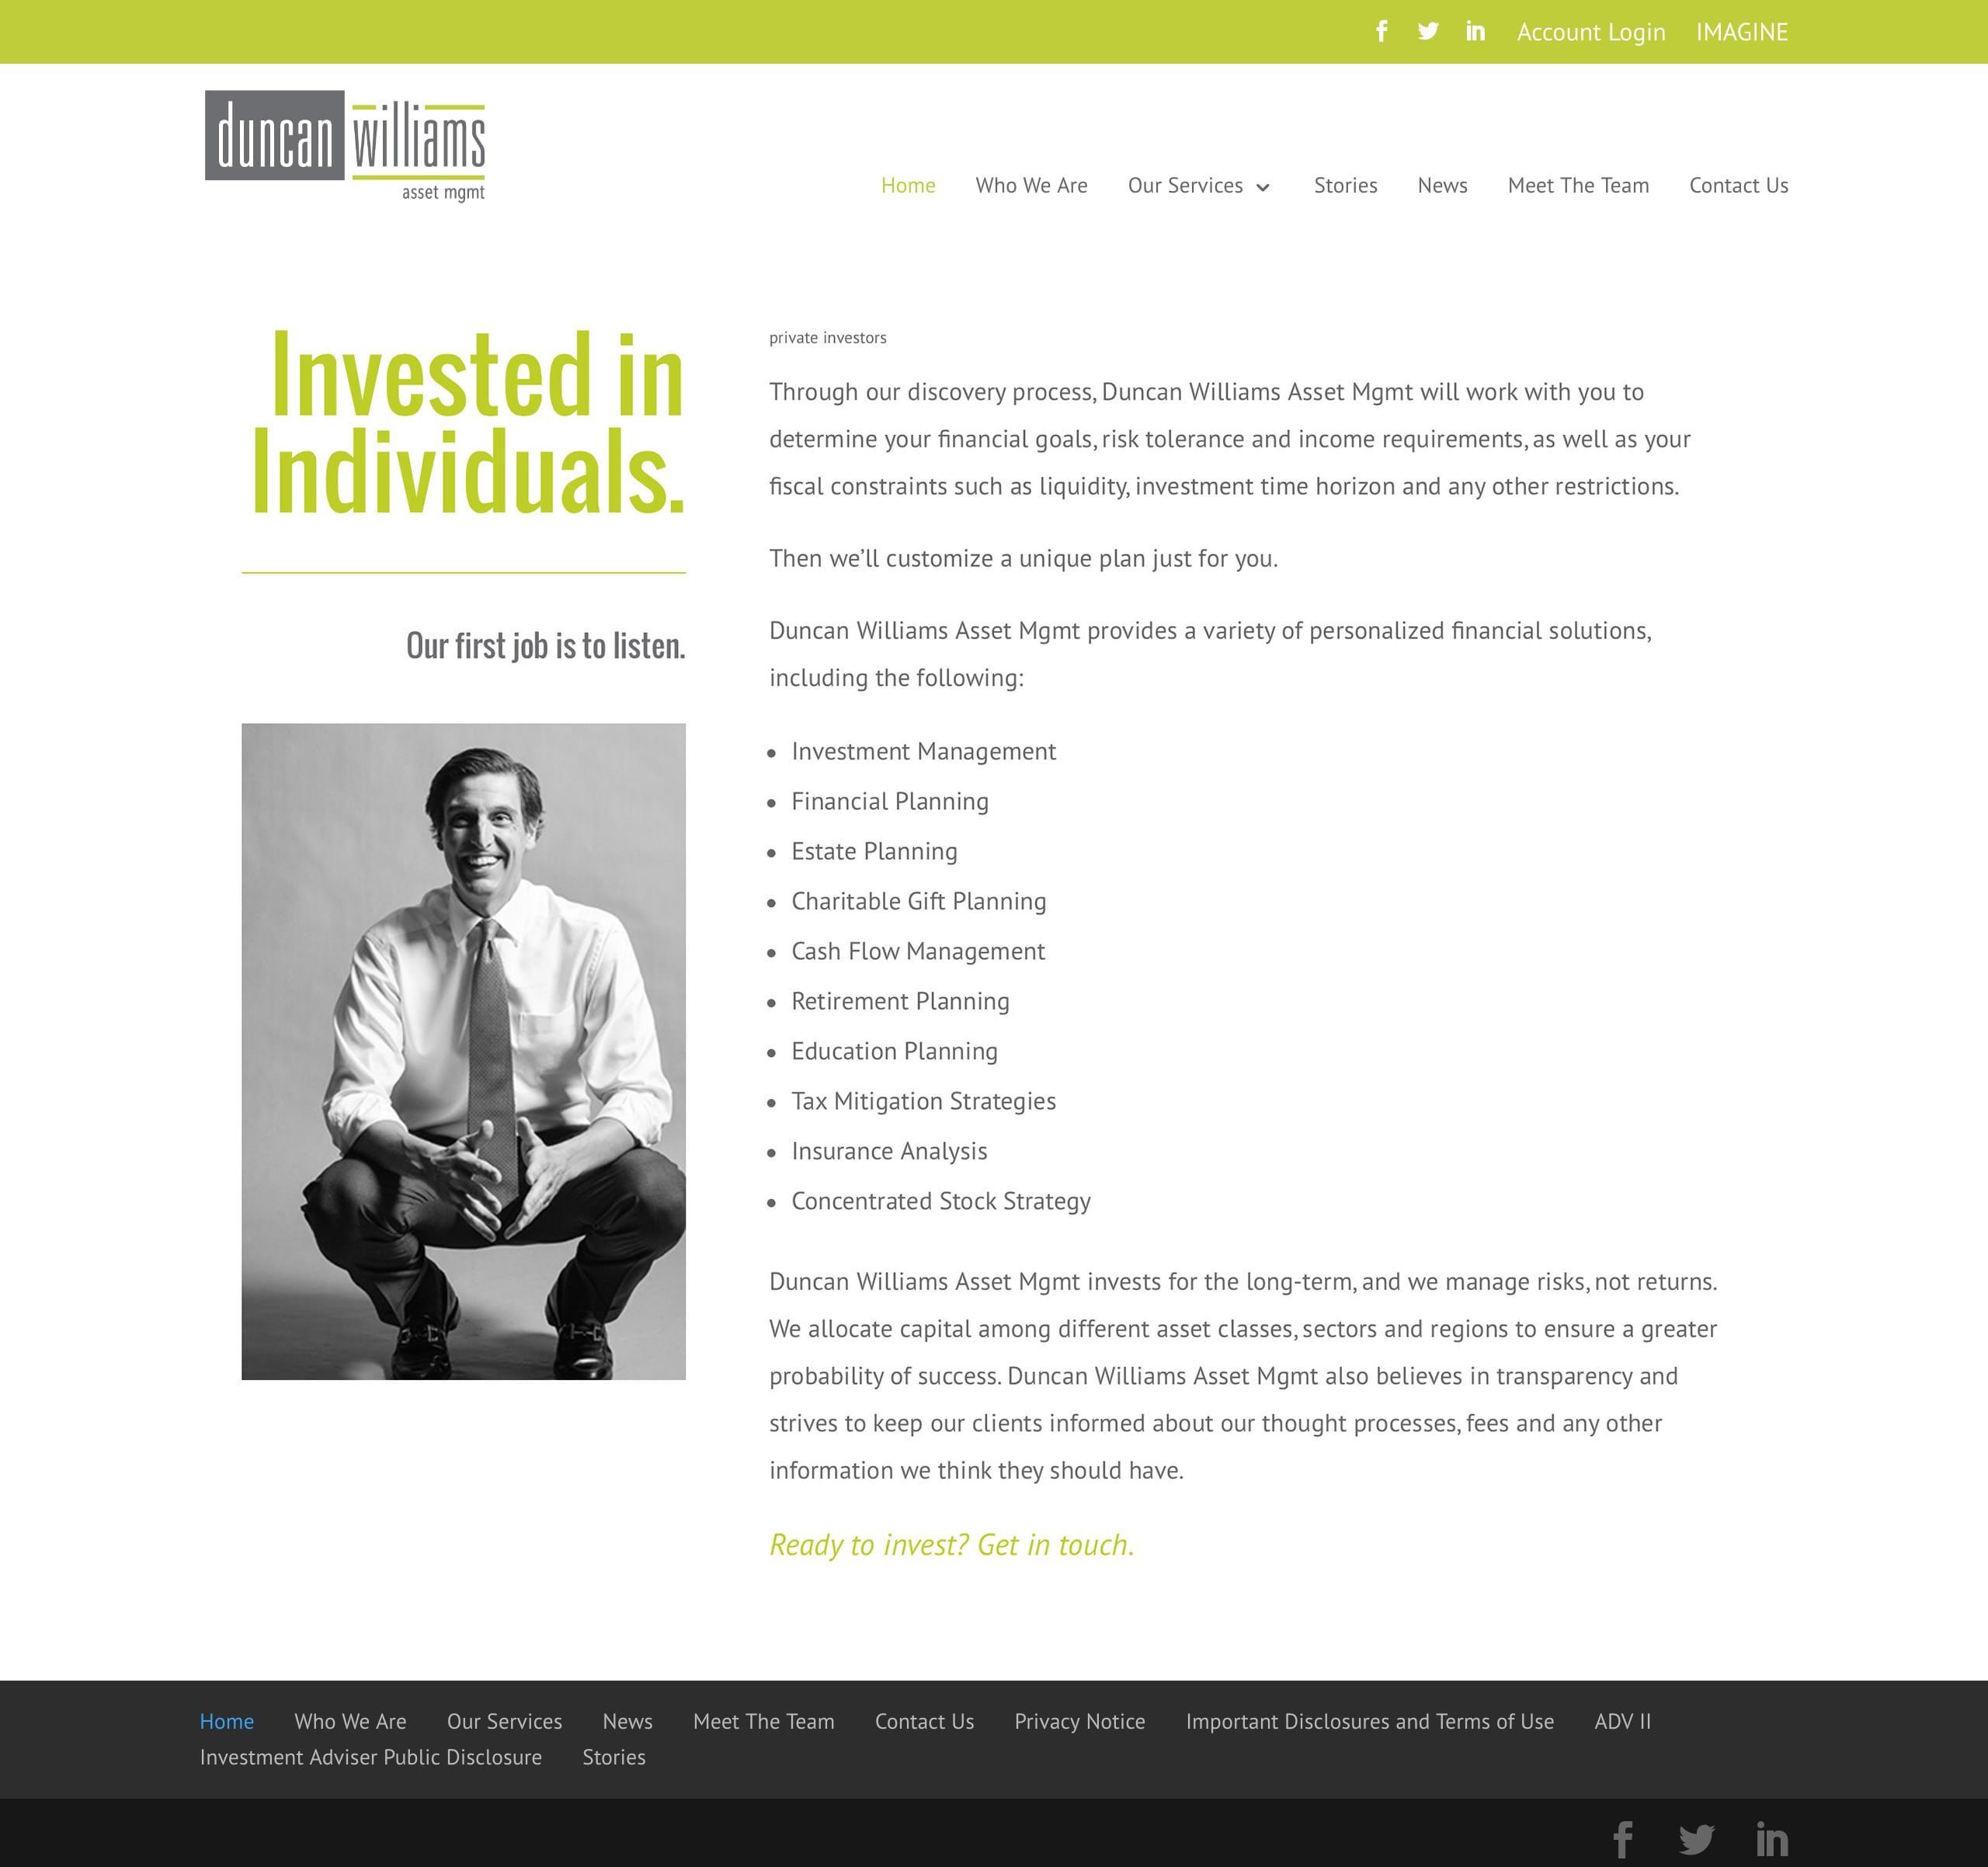 individual investments for Duncan Williams Asset Management